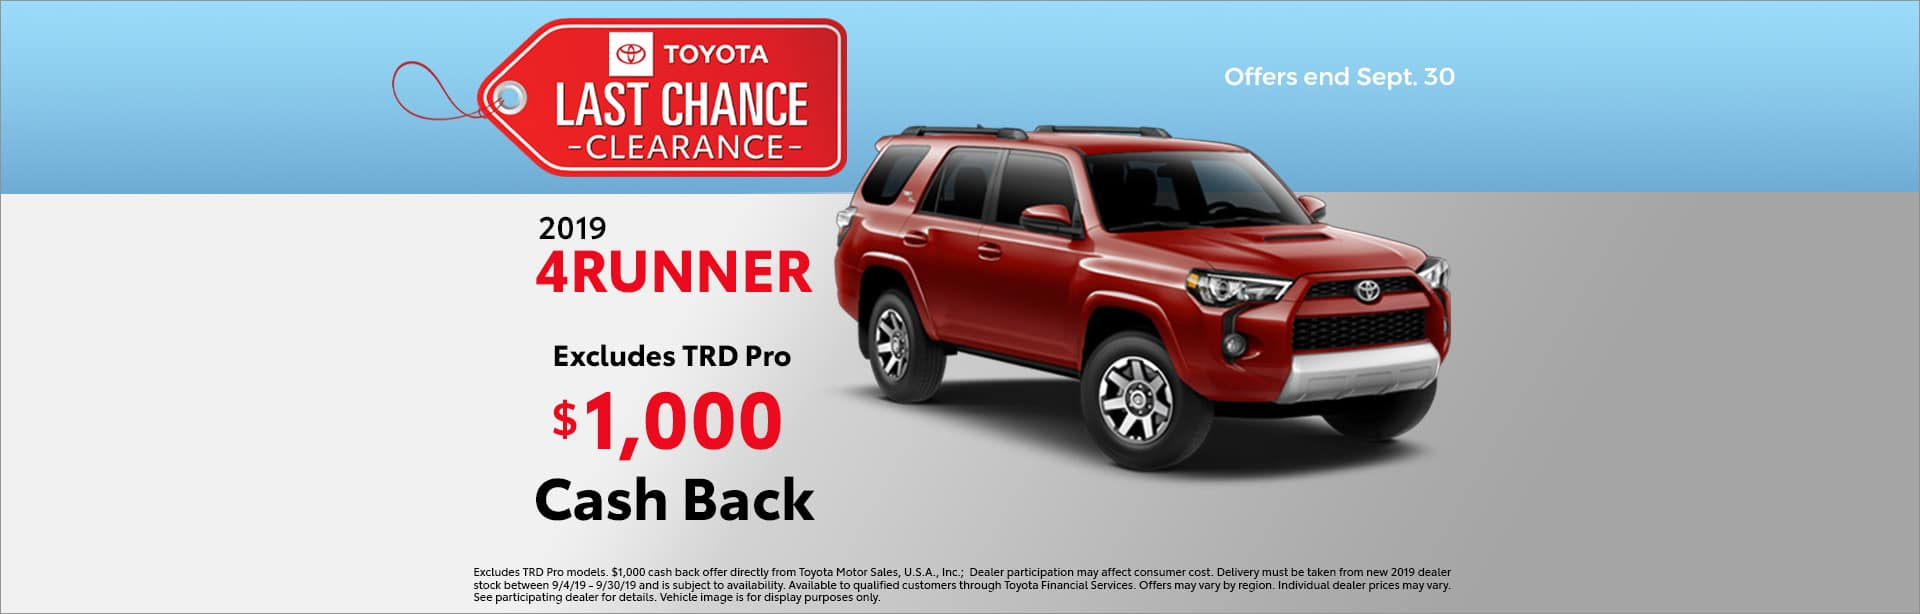 last chance clearance 4runner